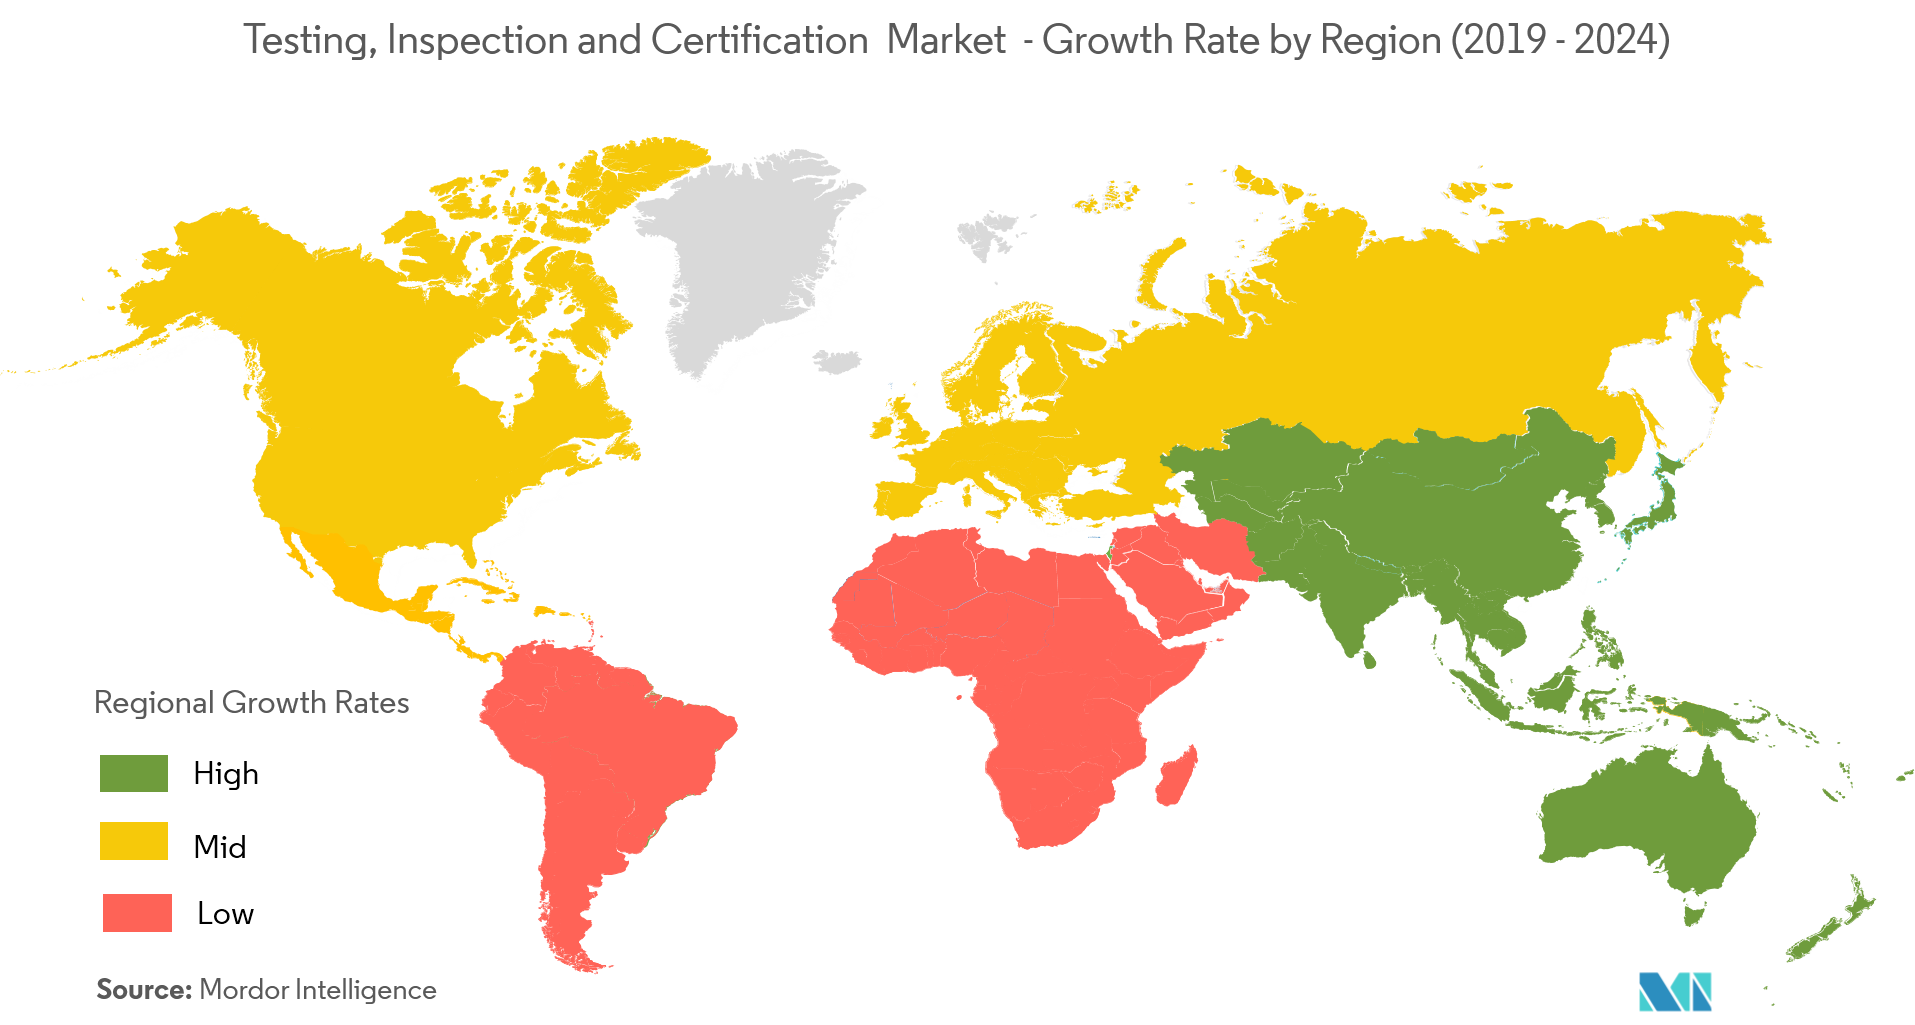 Testing, Inspection and Certification | Growth, Trends